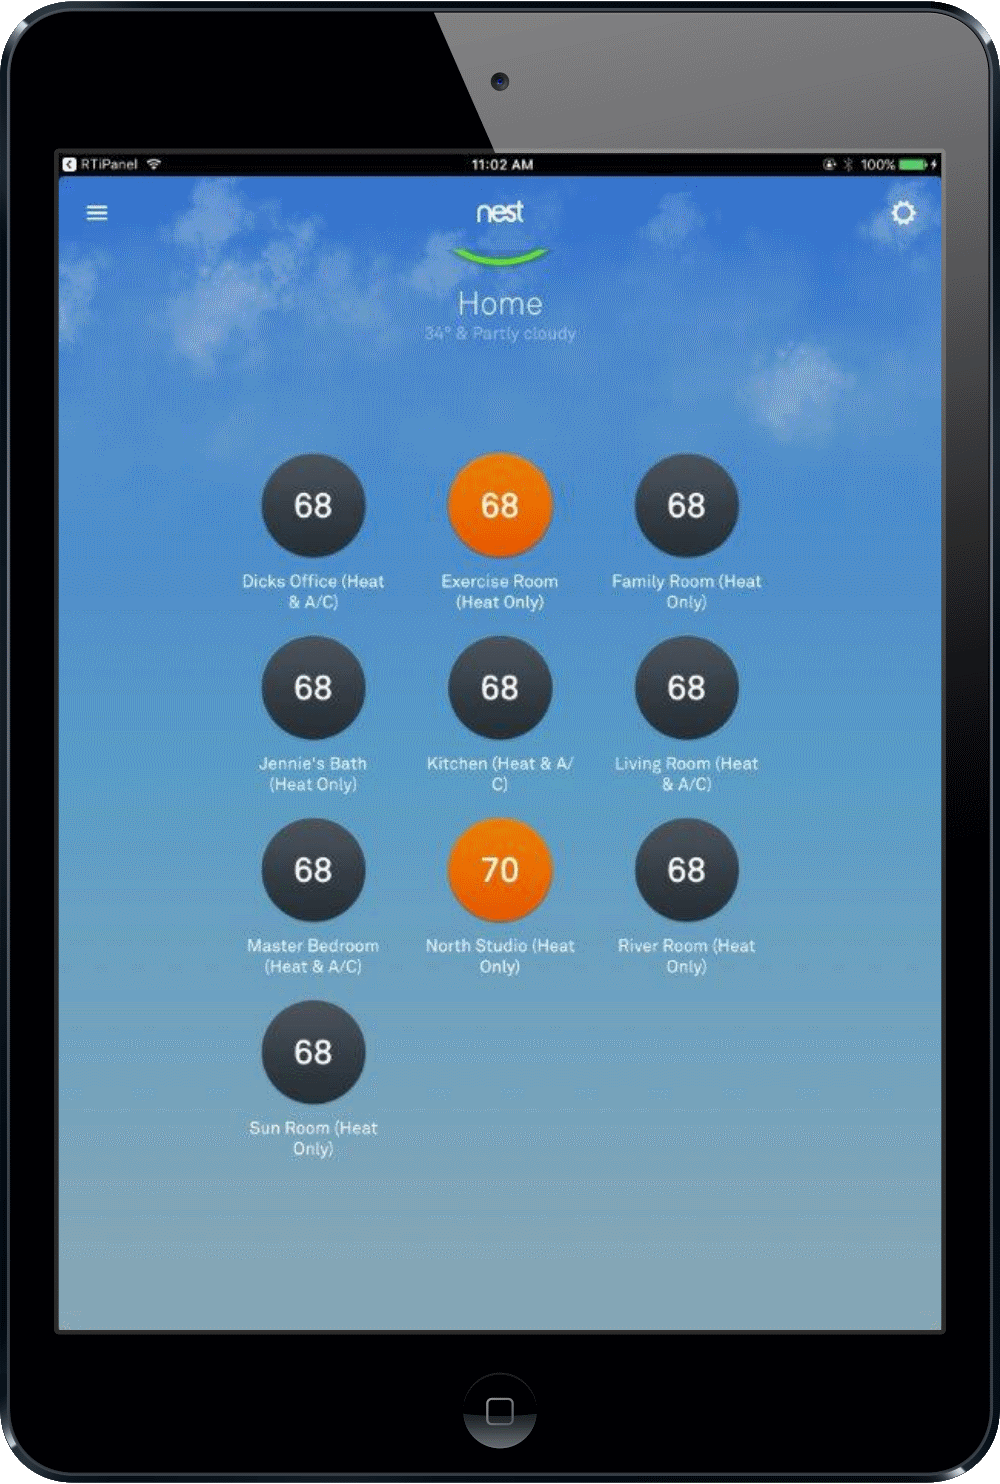 Universal Ipad Remote - Nyack, NY - HV Home Media - Hudson Valley Home Media - Nest Universal Remote on Ipad - Climate Control in Smart Home